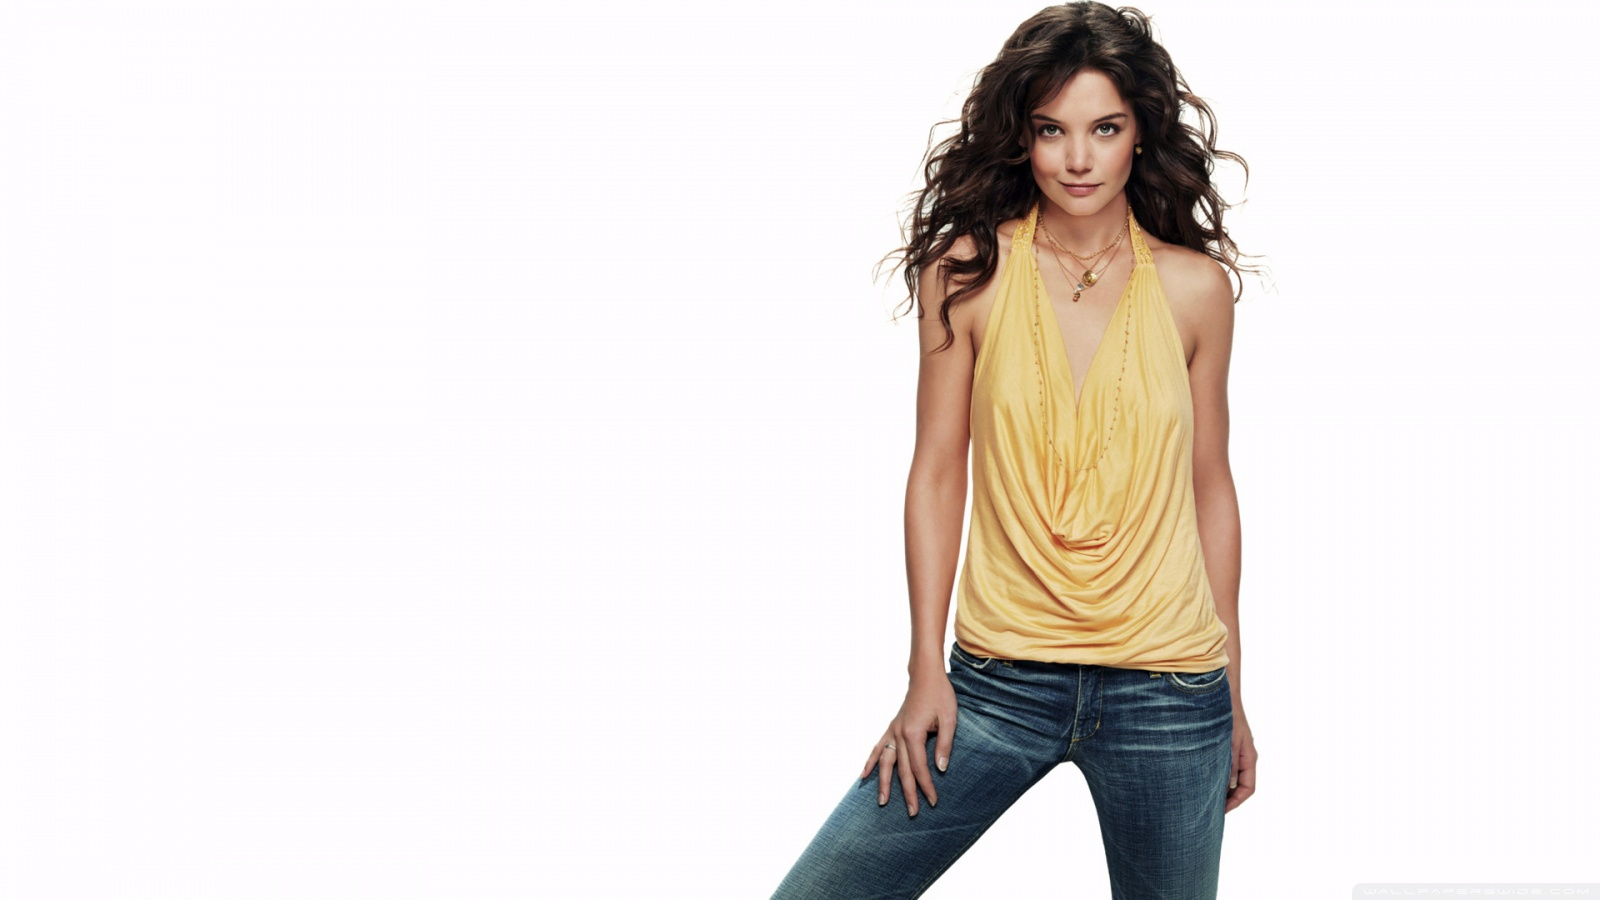 katie-holmes-spicy-images